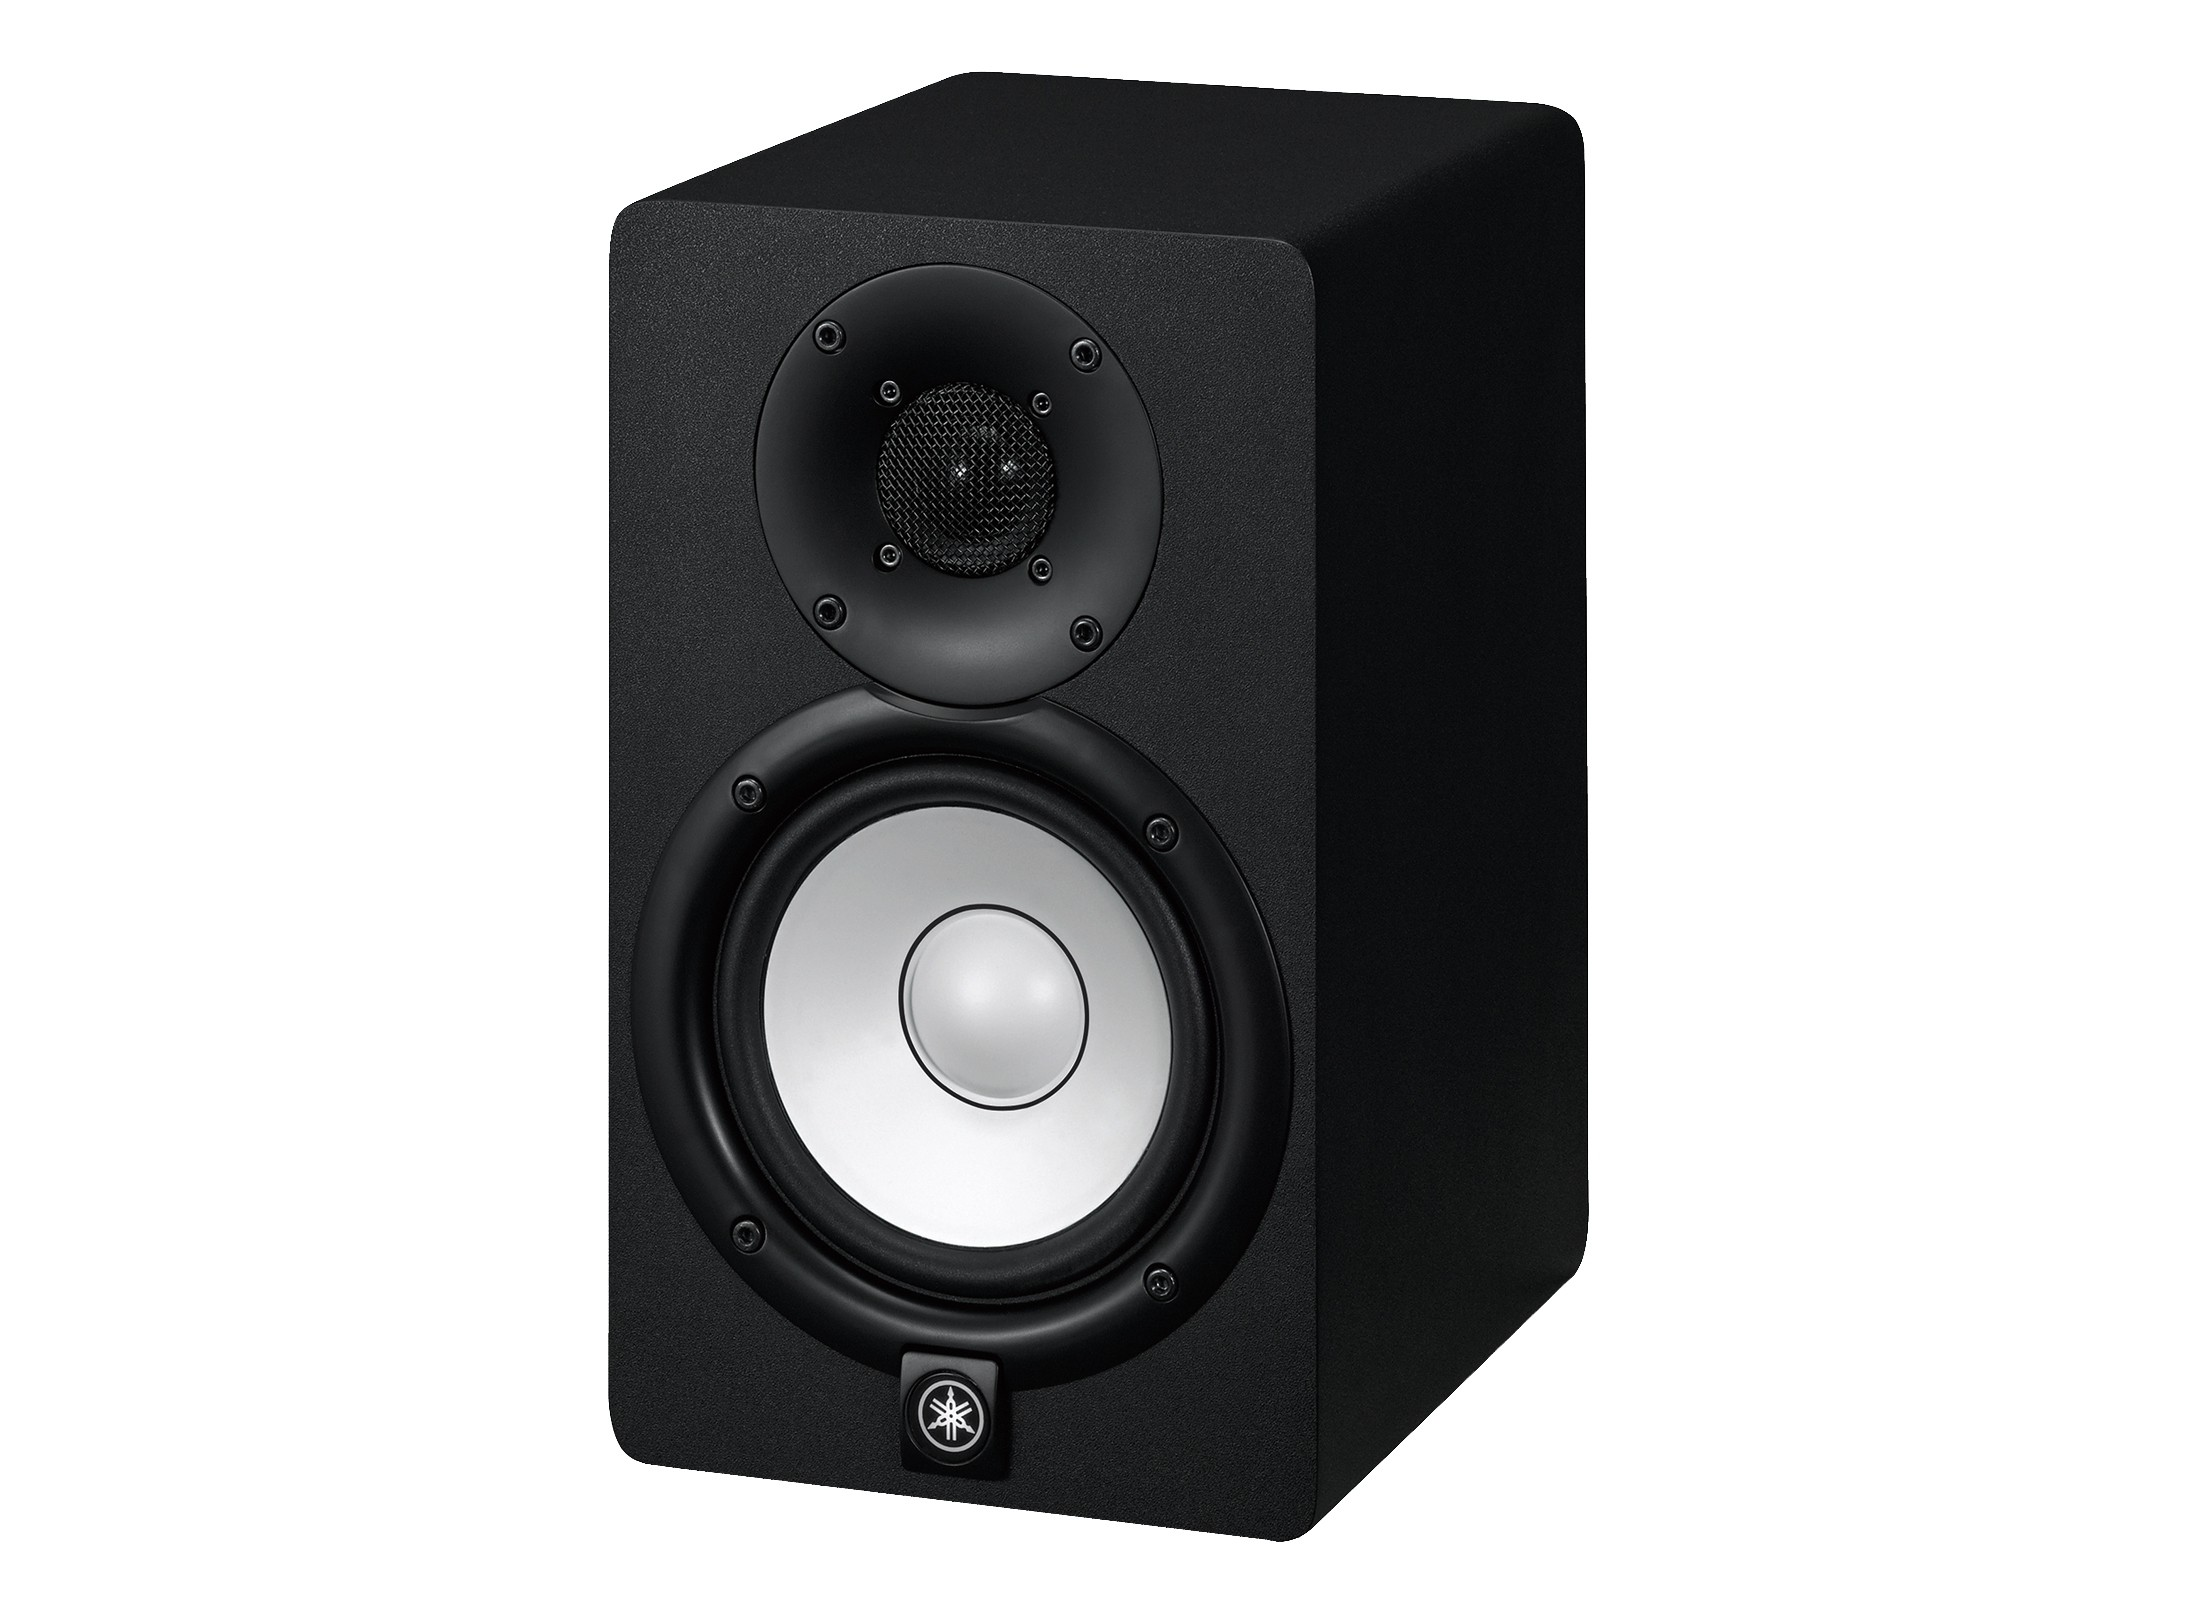 Yamaha hs5 active studio monitor online at low prices at for Yamaha studio monitors hs5